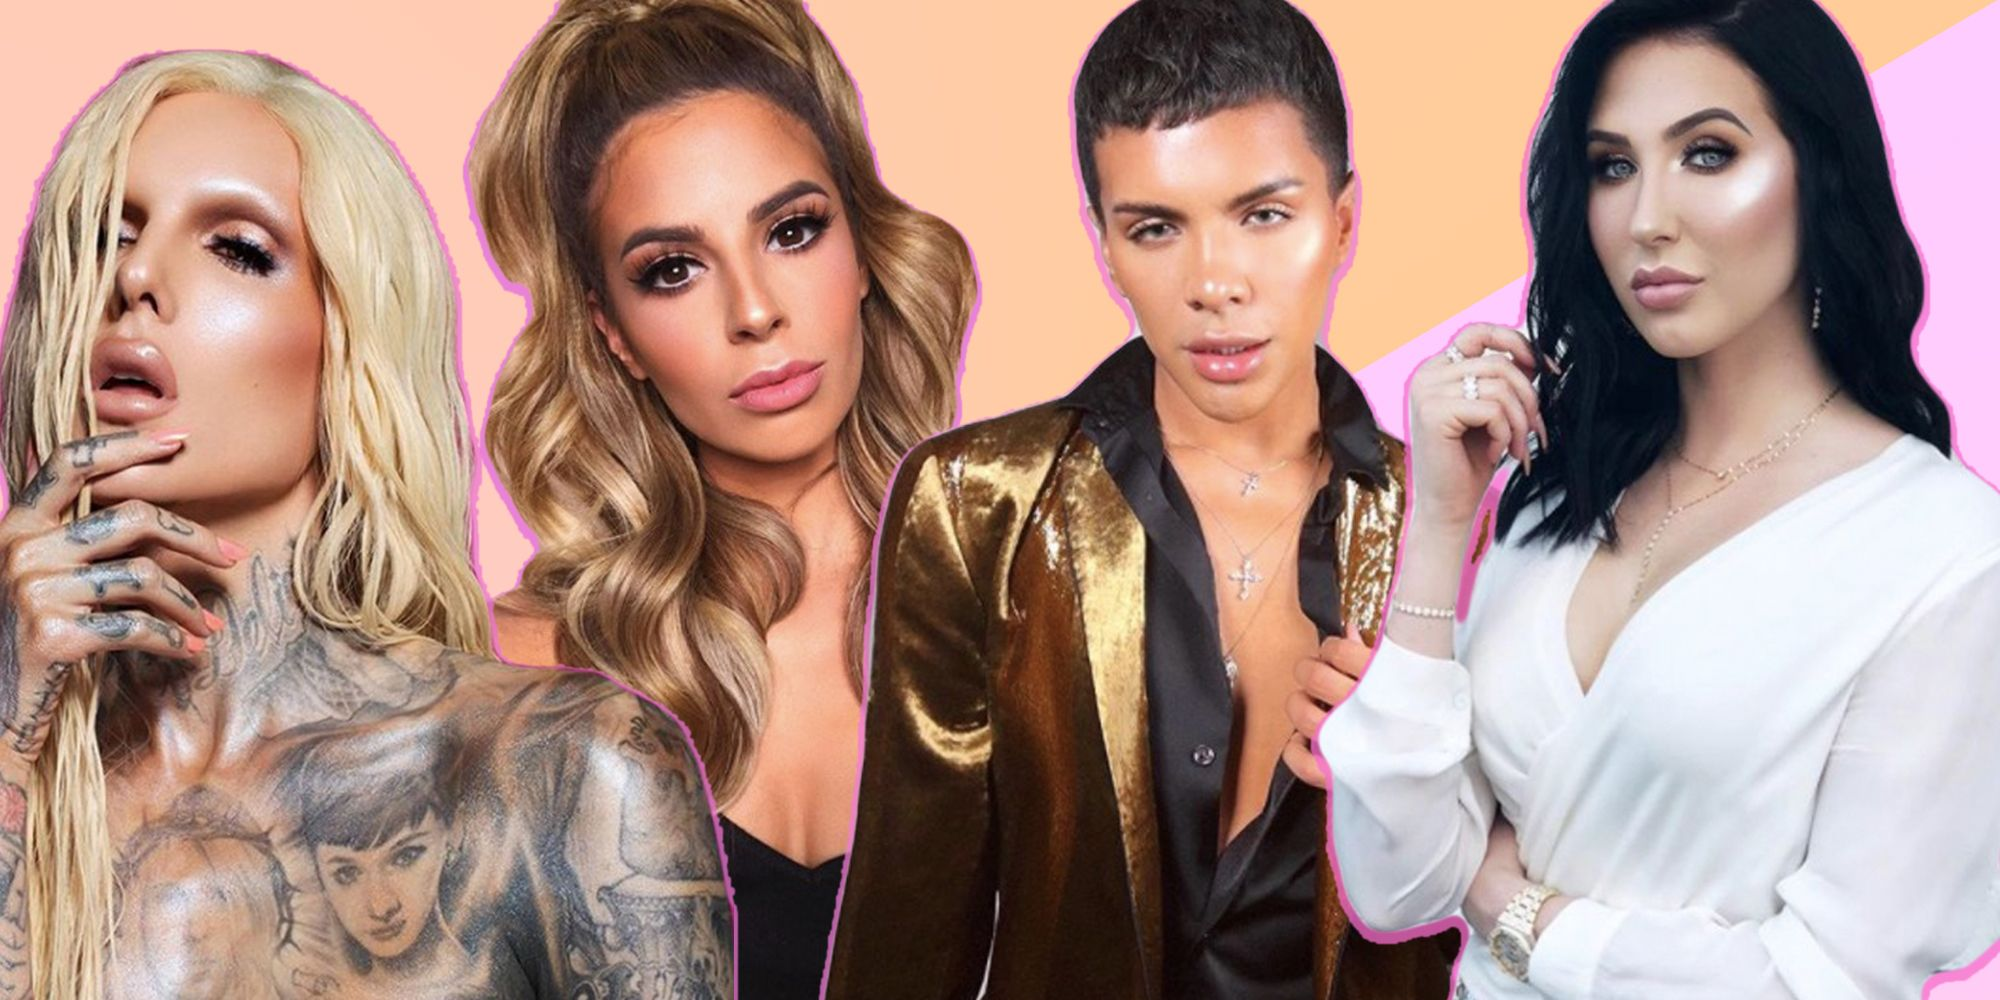 The 11 biggest YouTube beauty scandals of 2018